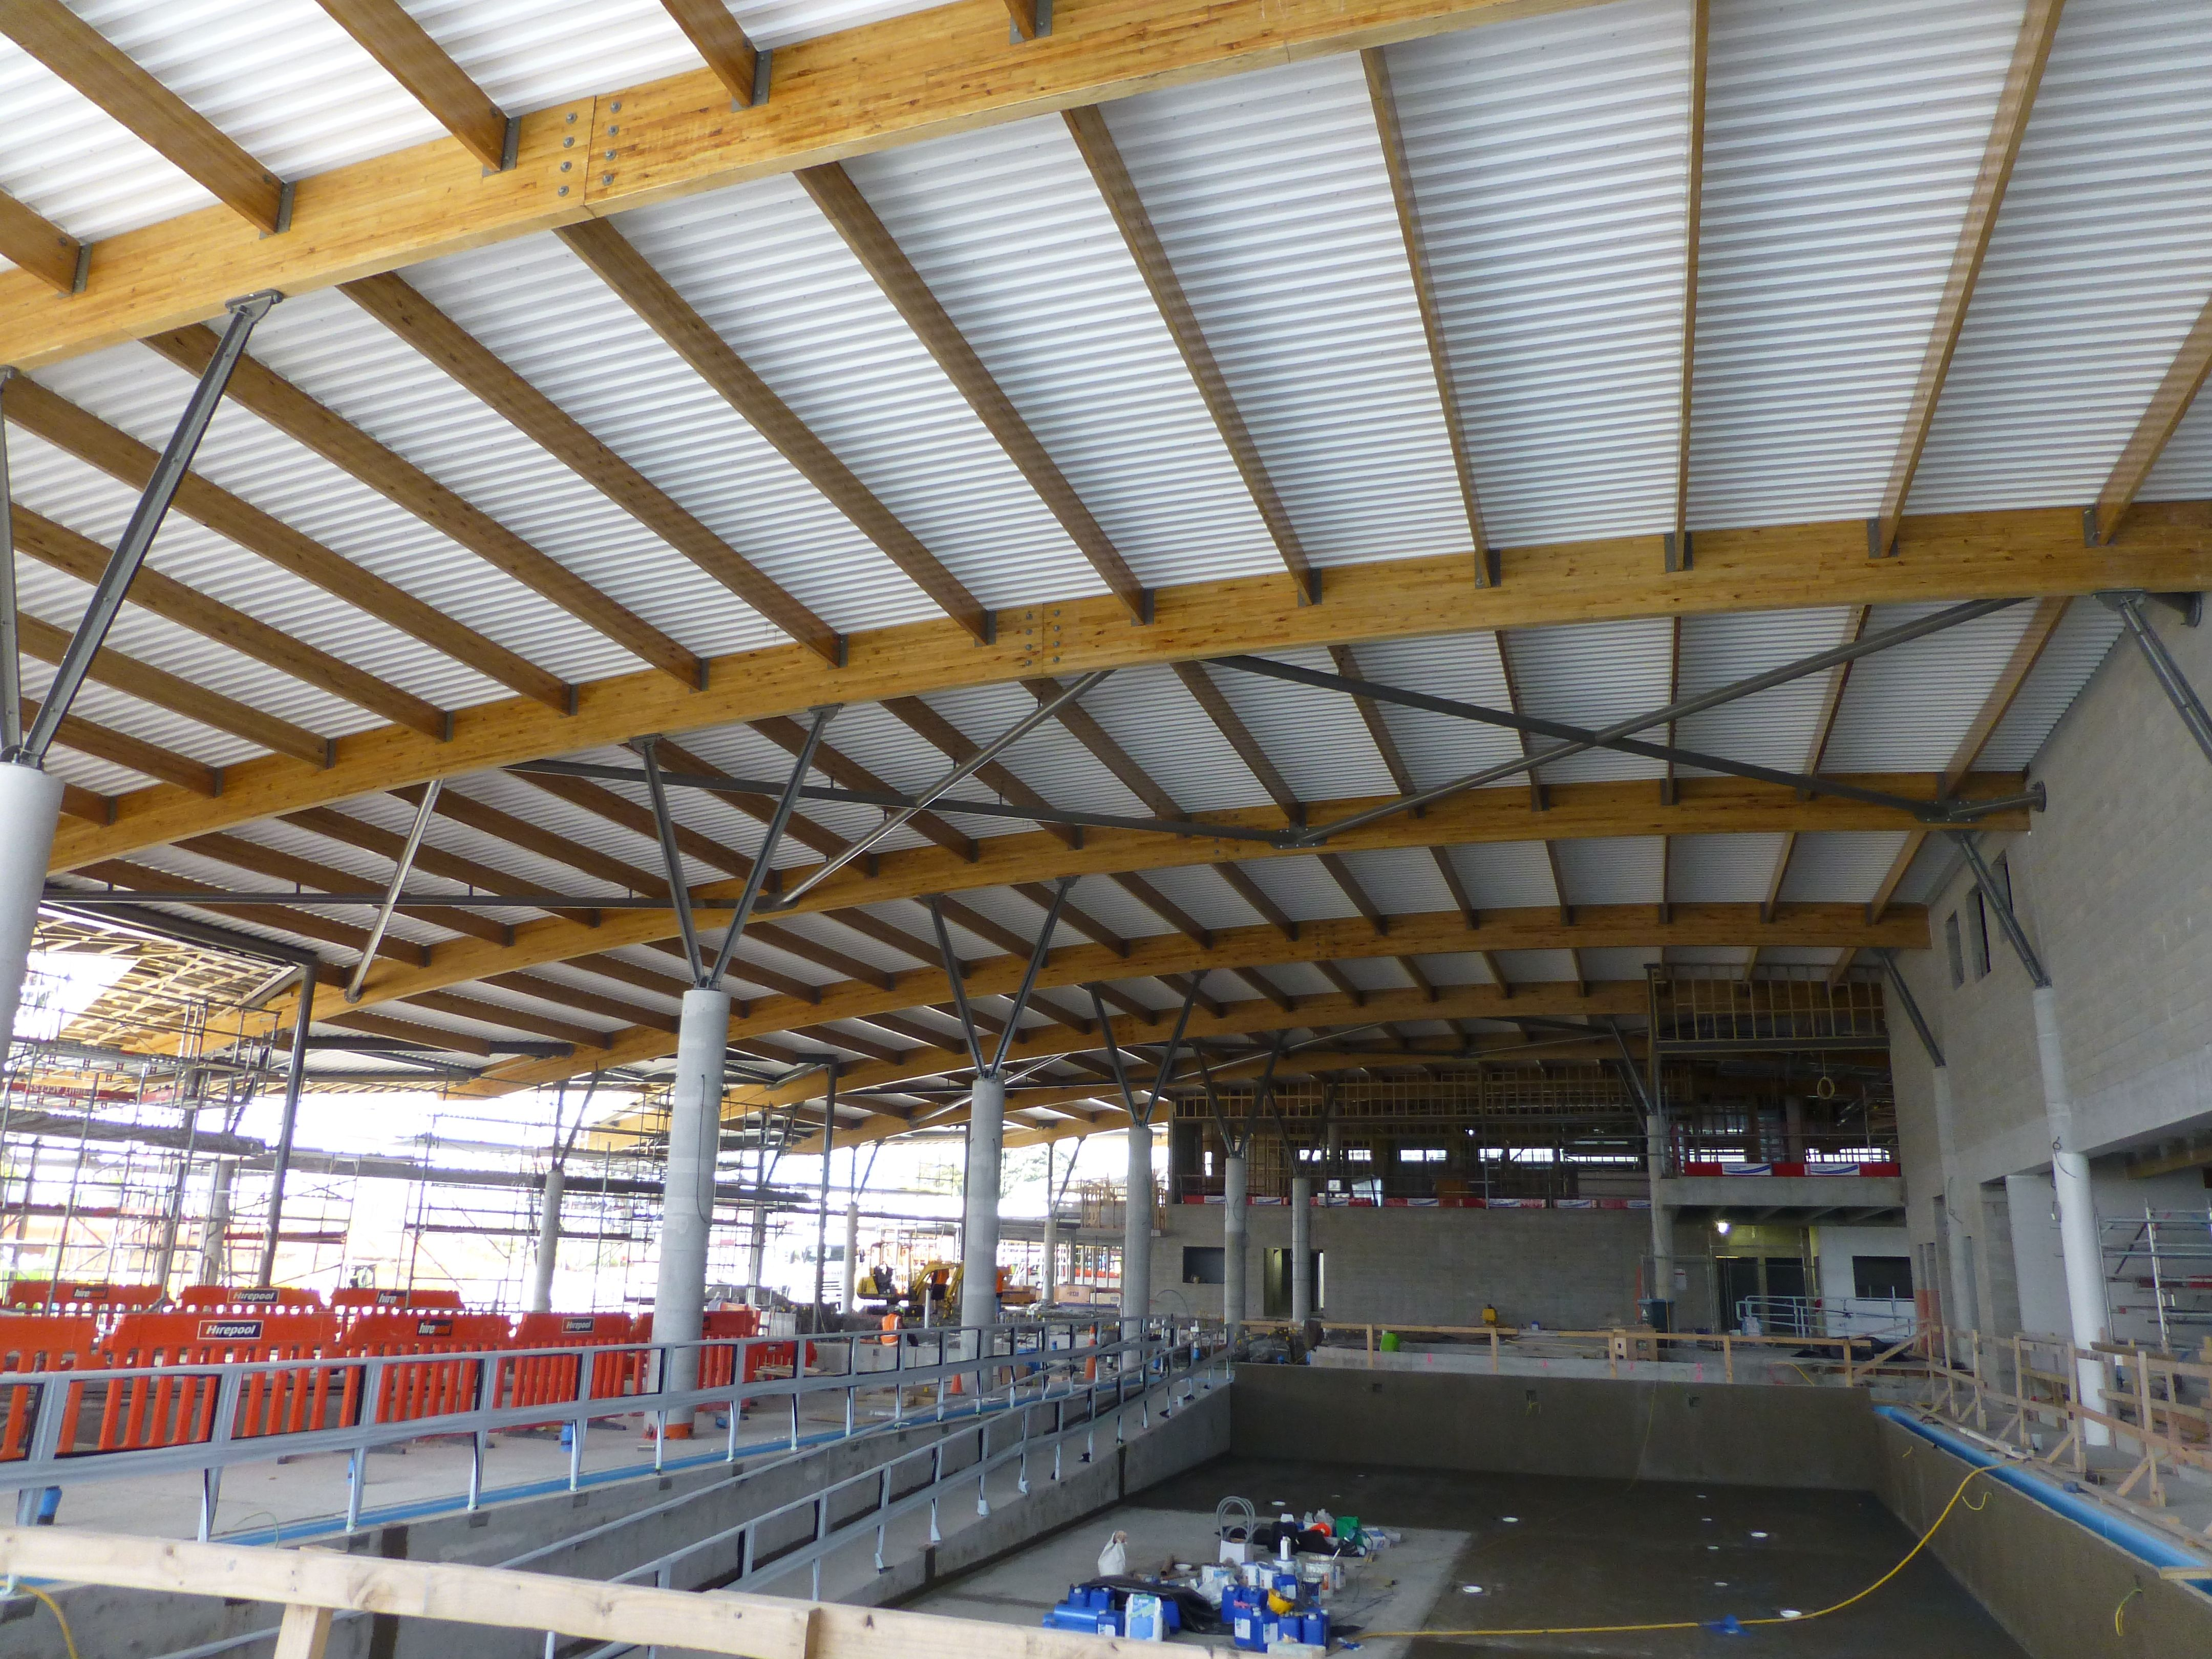 Otahuhu Recreation Centre Glulam Roof Rafters and Purlins & Otahuhu Recreation Centre Glulam Roof Rafters and Purlins ... memphite.com